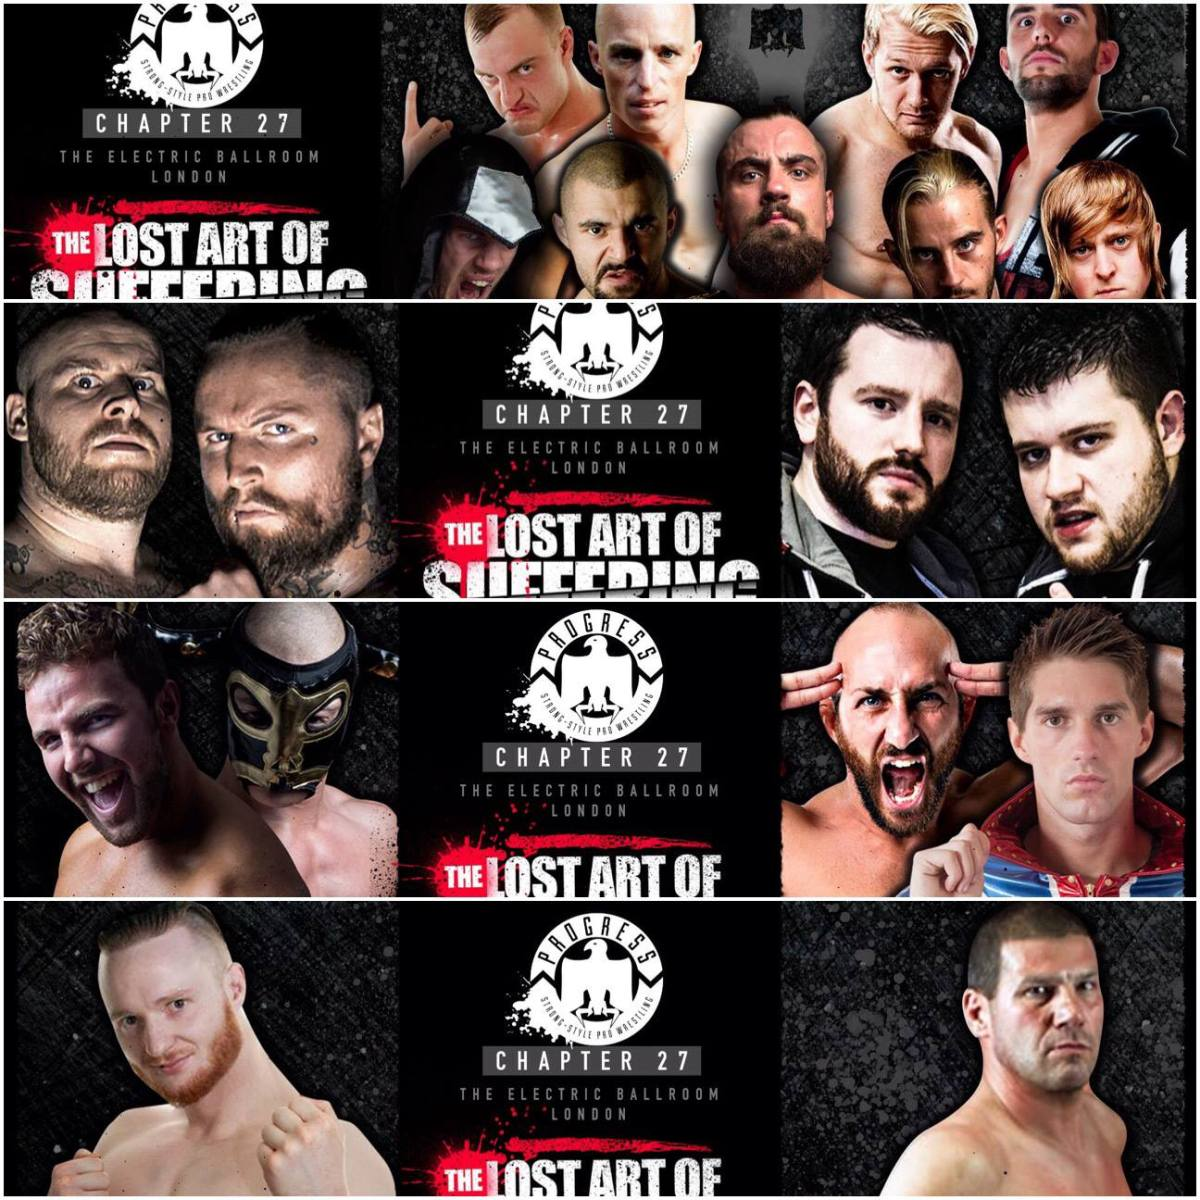 PROGRESS Wrestling PREVIEW - Chapter 27: The Lost Art Of Suffering